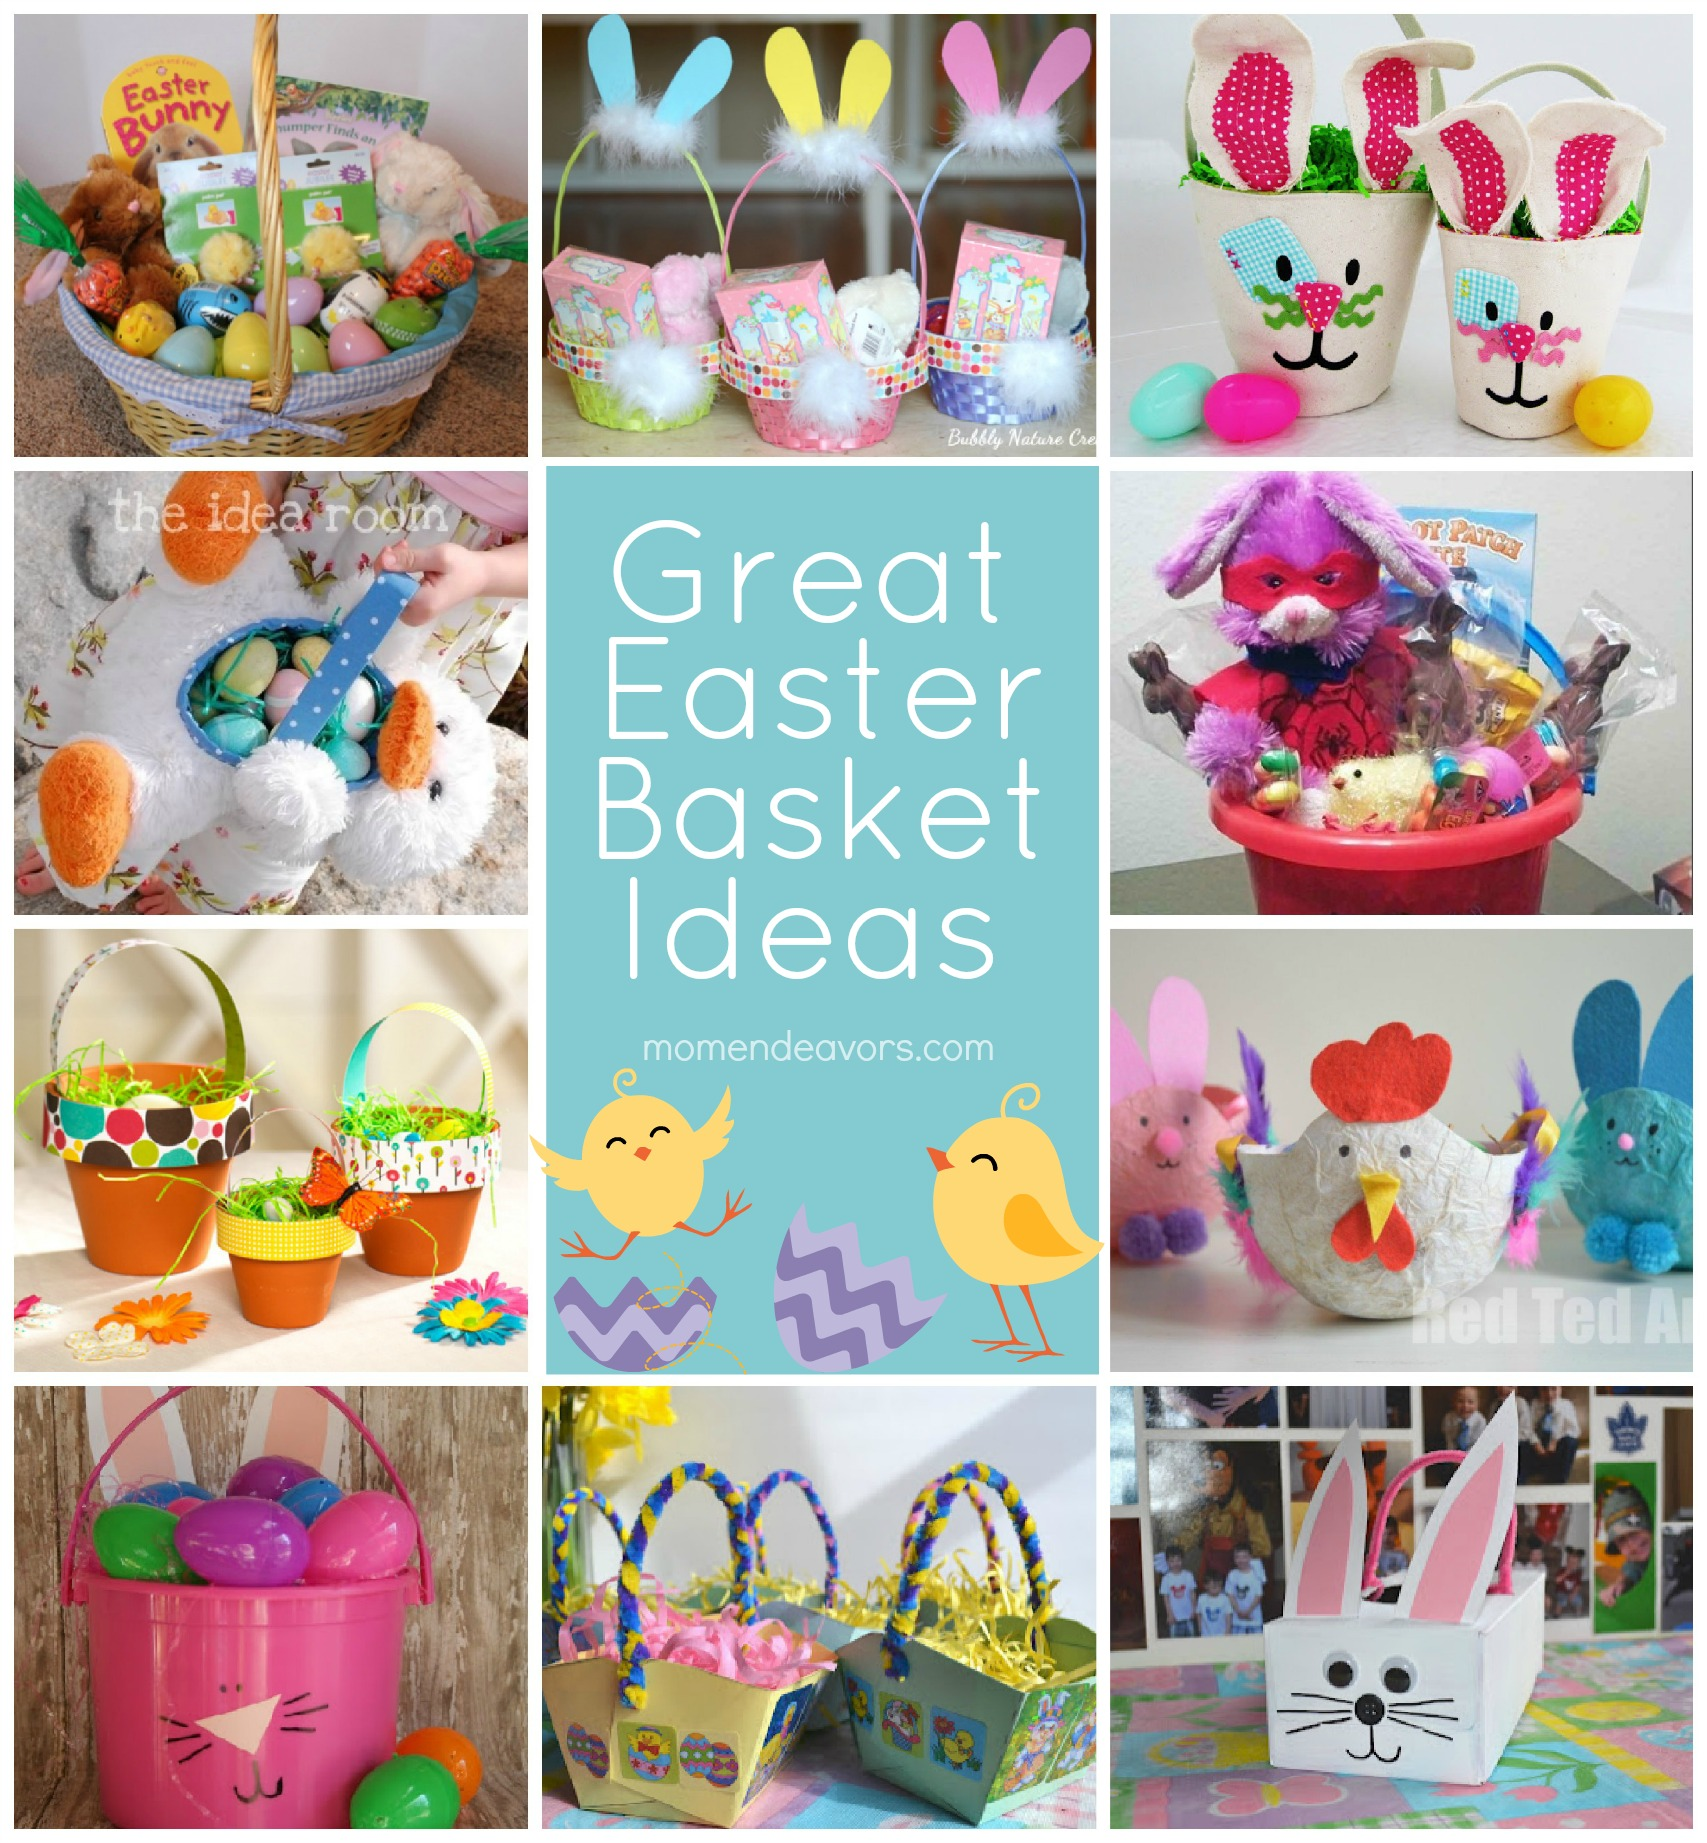 Great Easter Basket Ideas Mom Endeavors